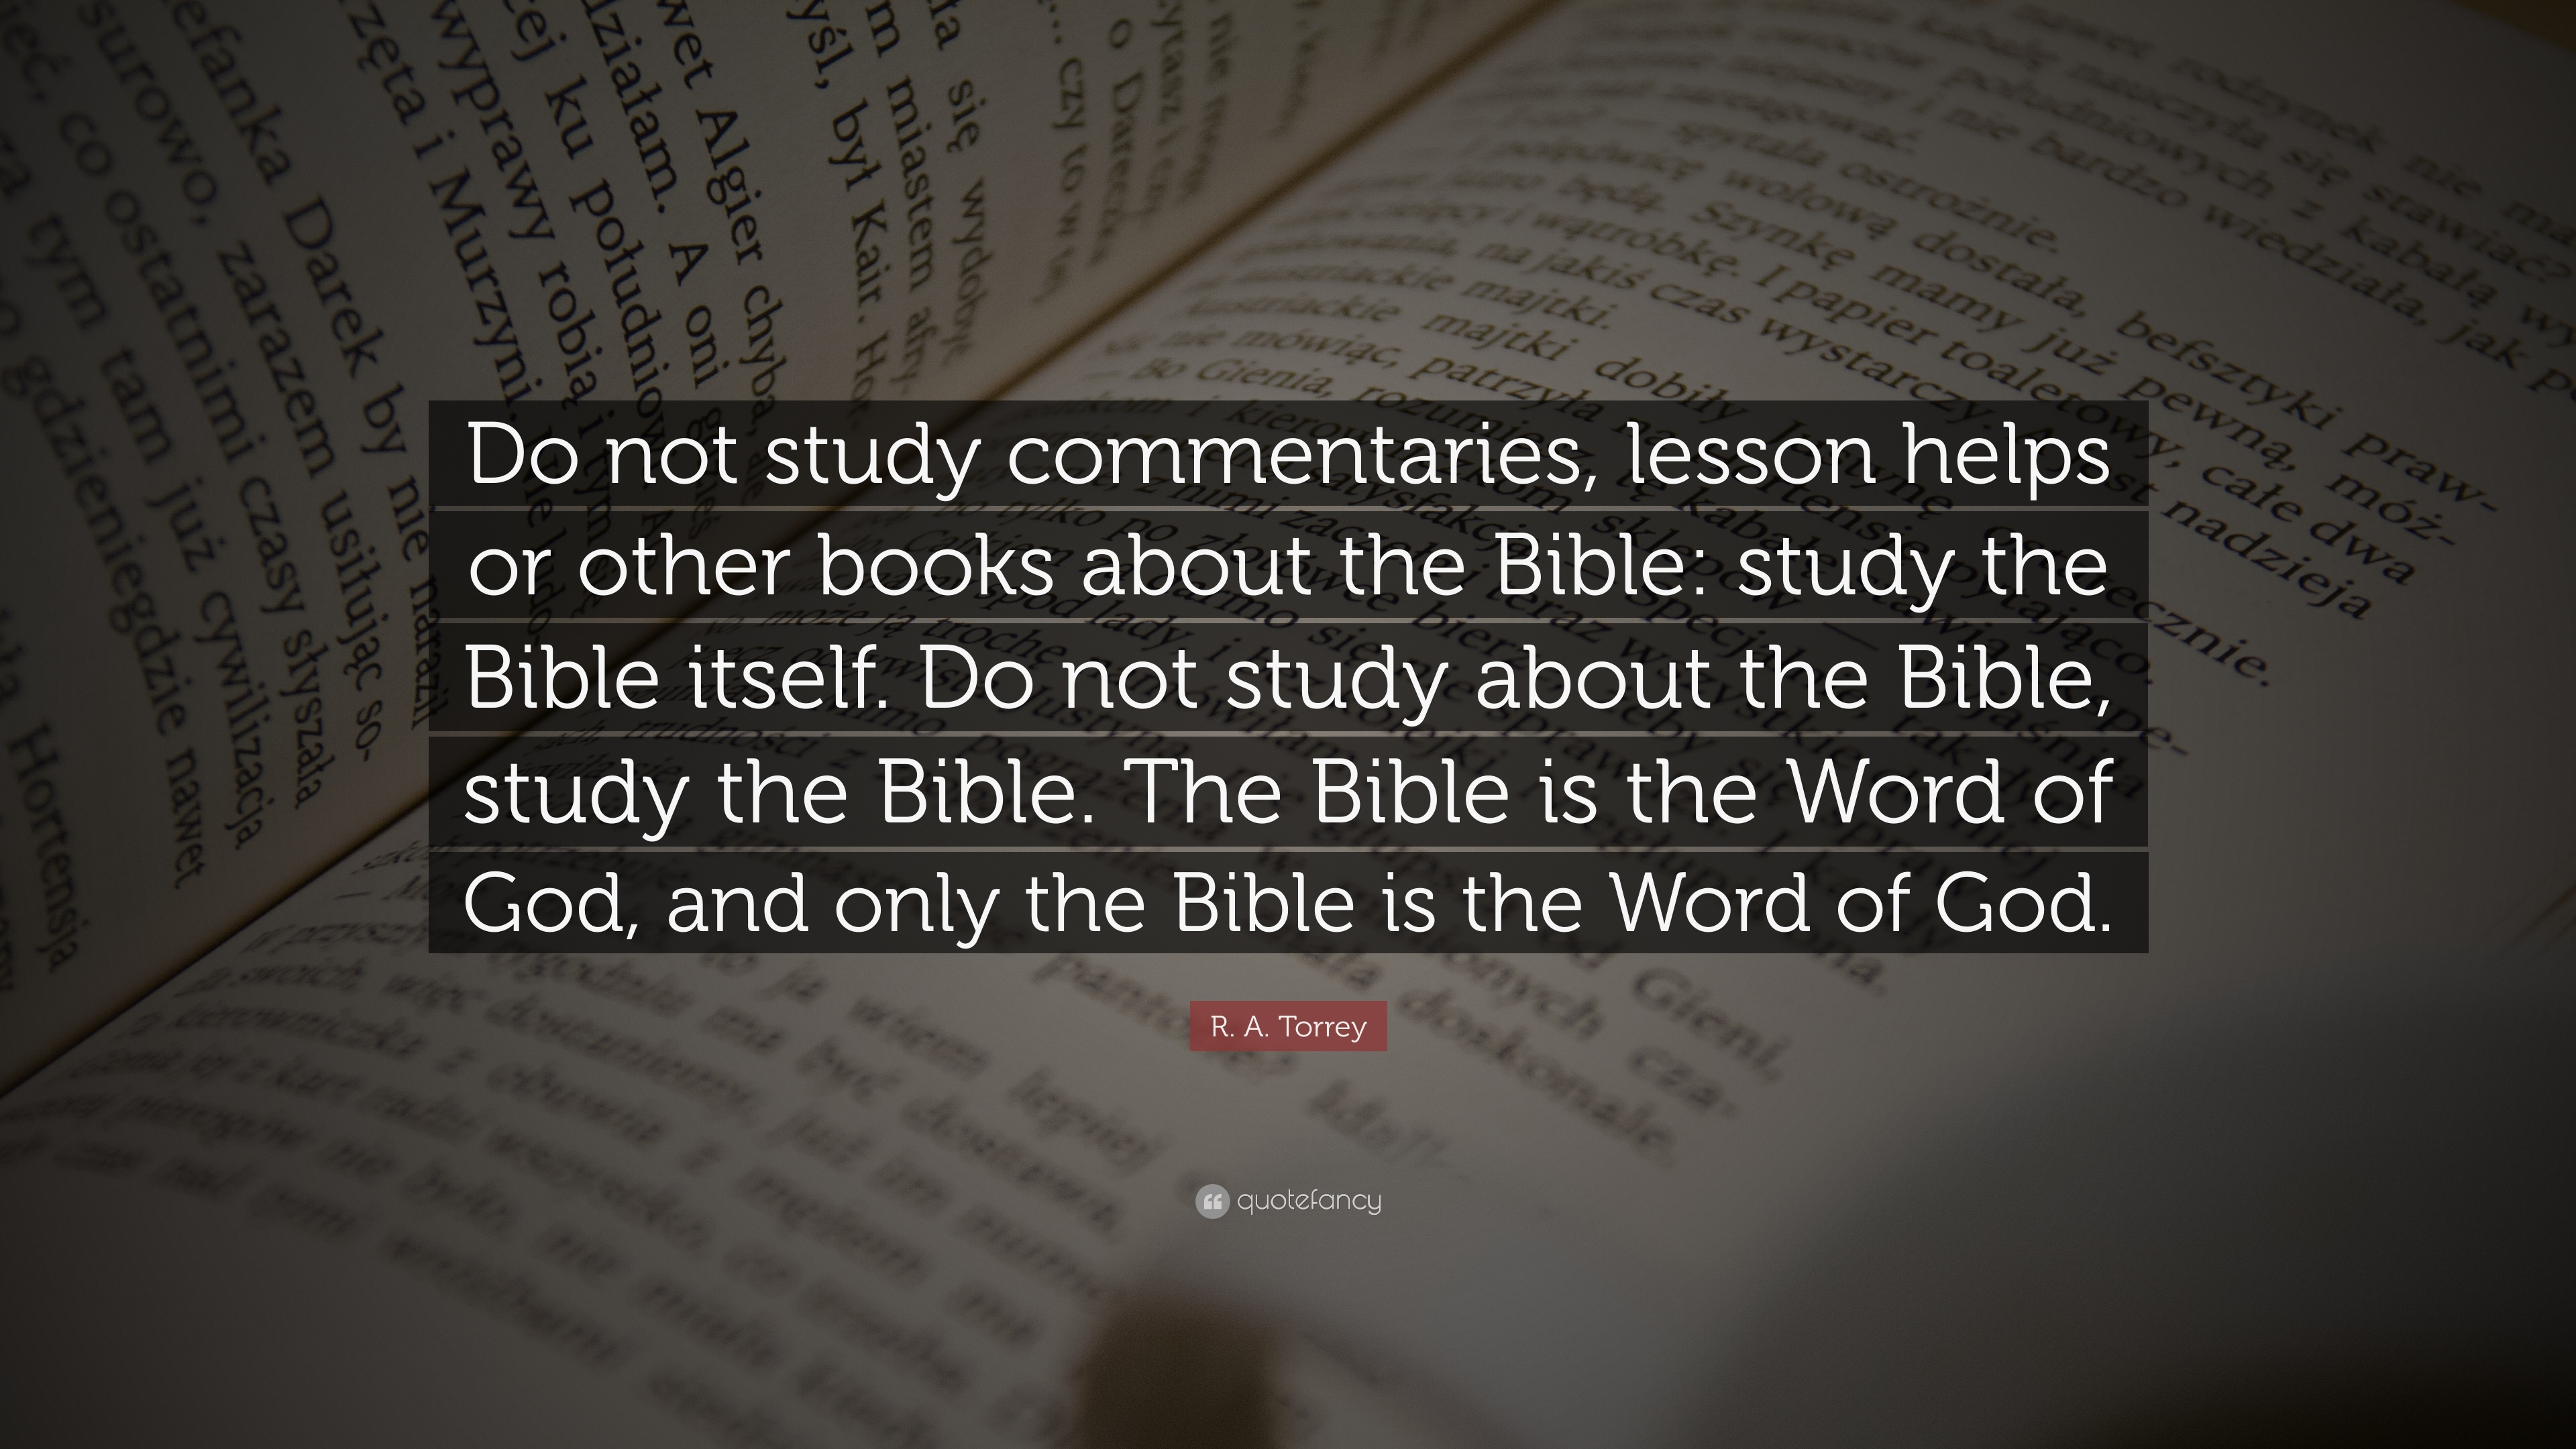 Study helps for the bible